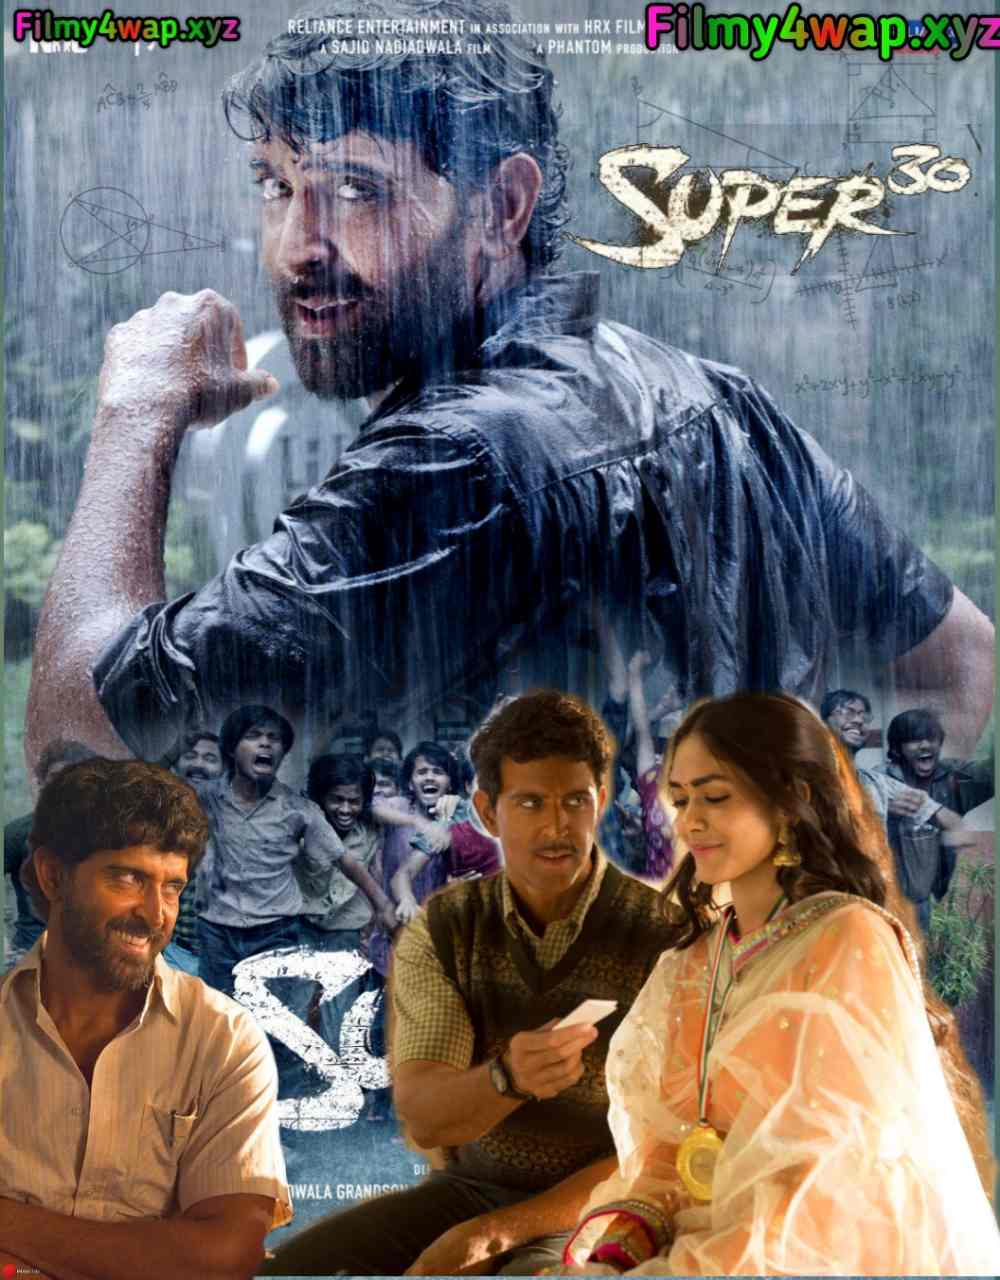 Super 30 (2019) New Bollywood full Movie 400MB 300mb Mkv 480p